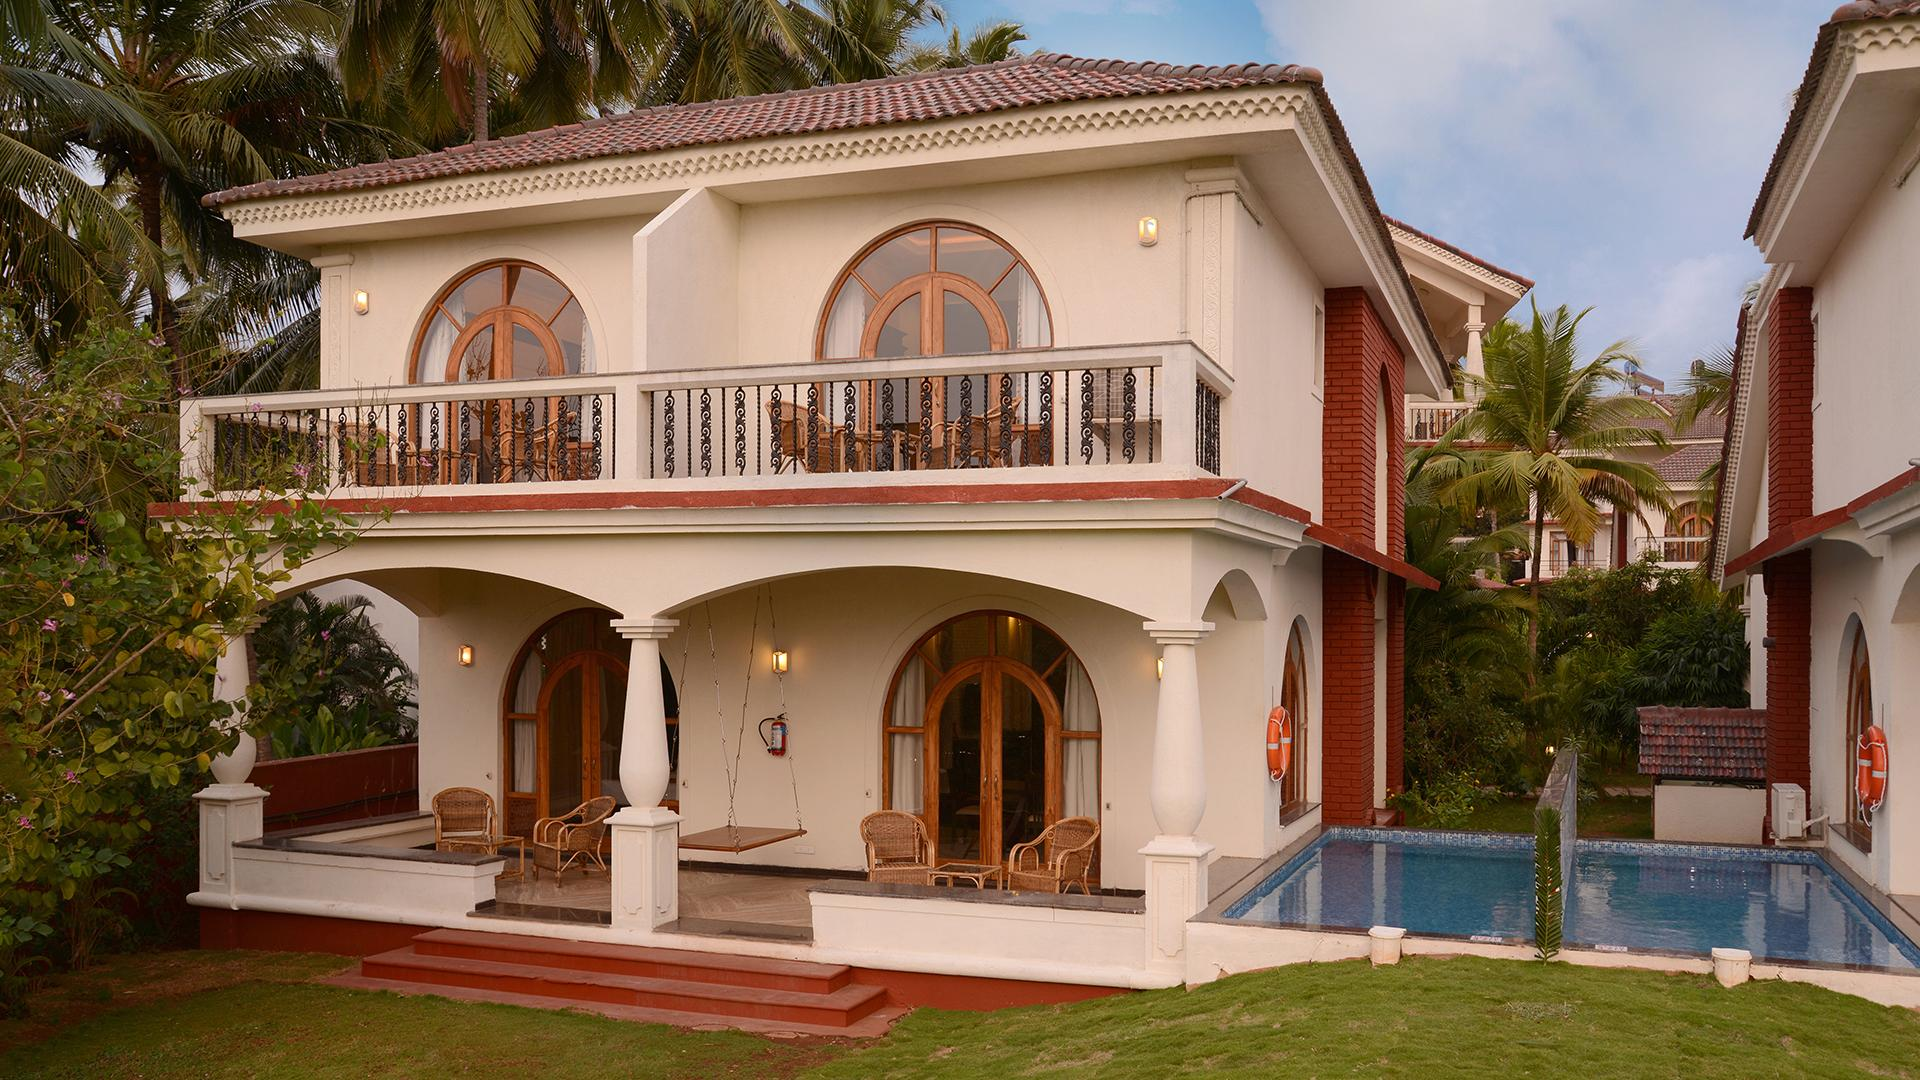 Four Bedroom Villa with Plunge Pool image 1 at Resort Rio by North Goa, Goa, India